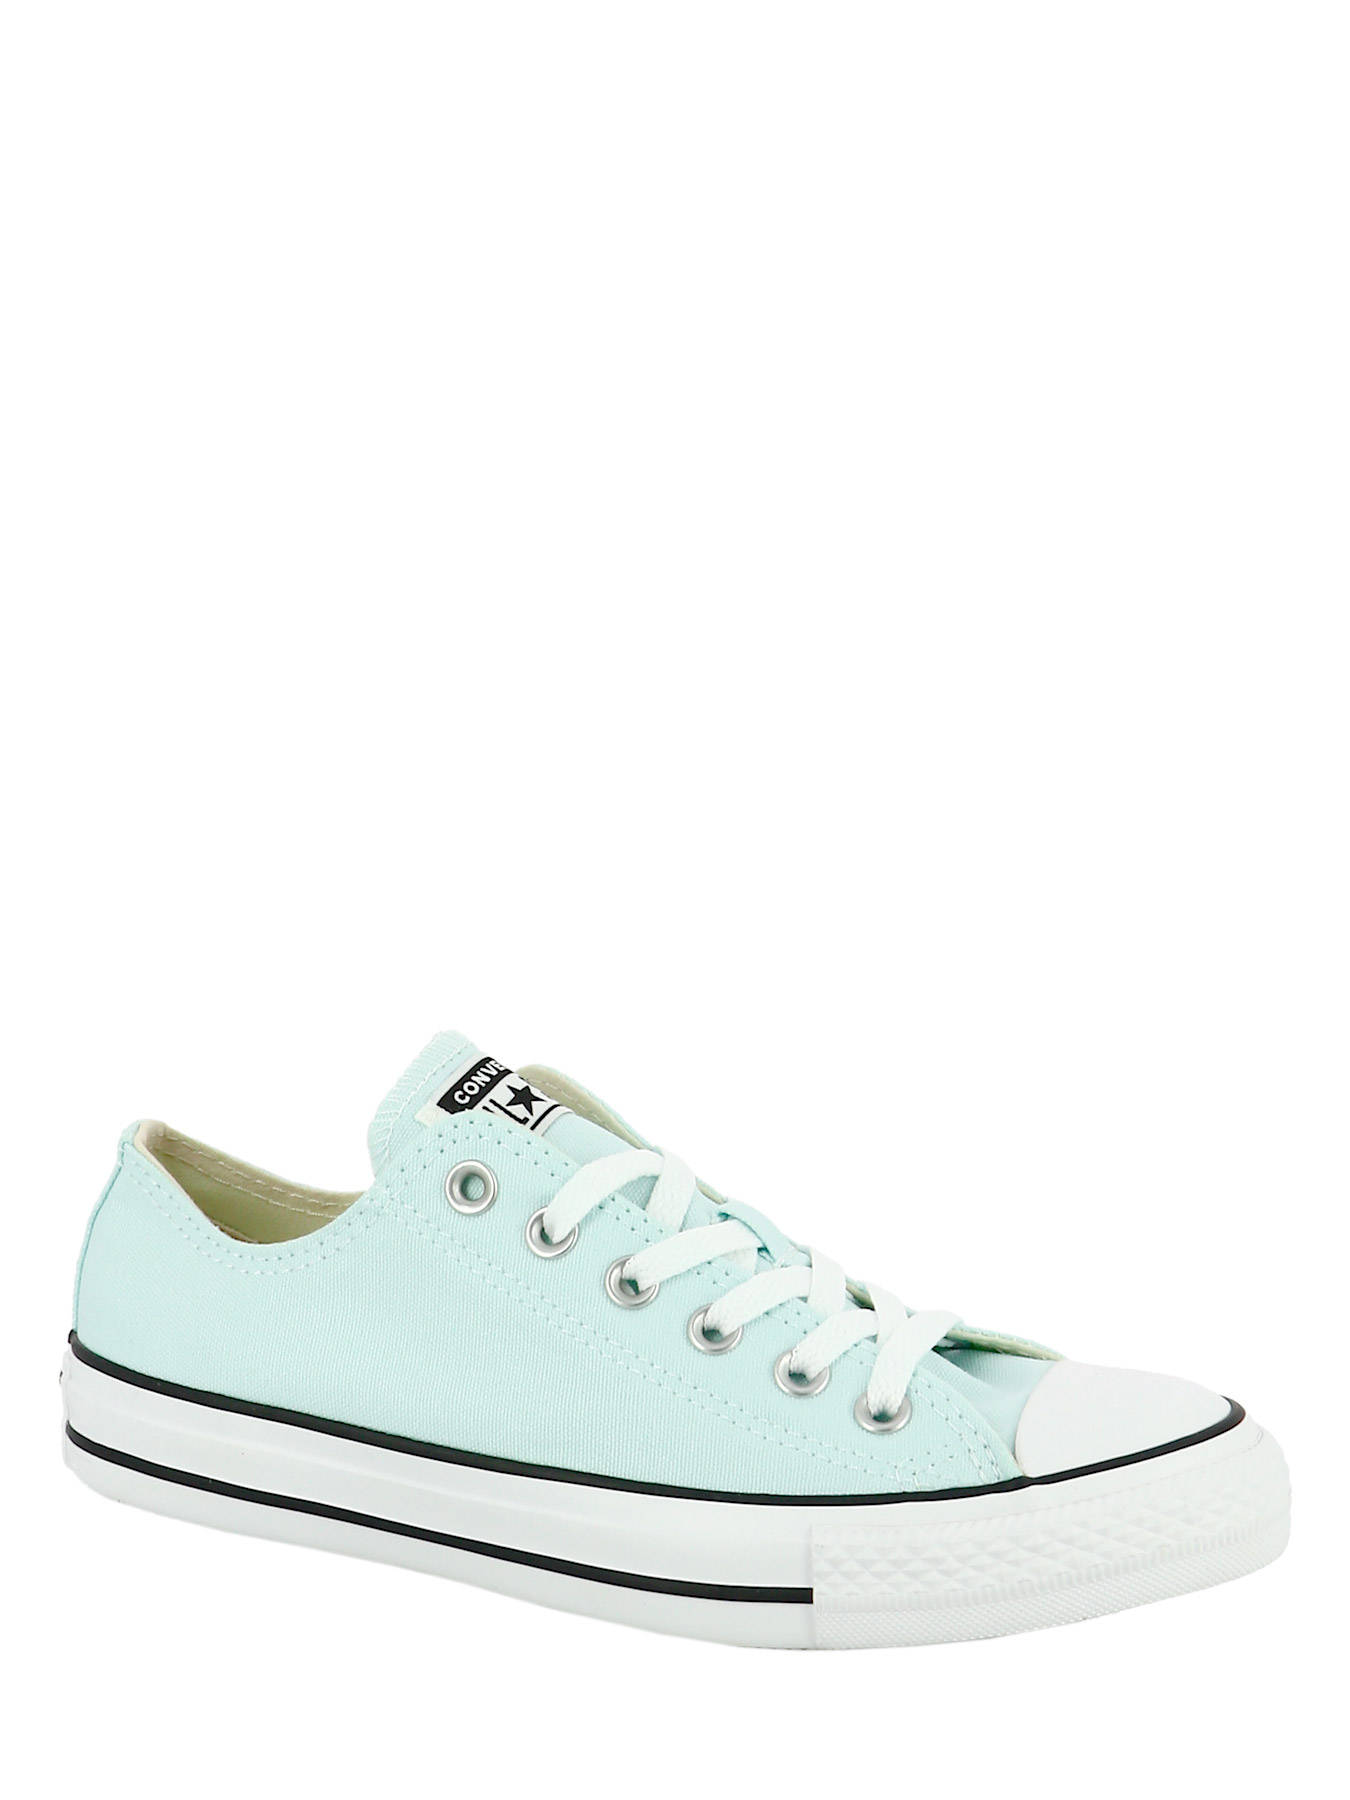 45145a475bea5 Converse Sneakers CTAS OX TEAL T - best prices